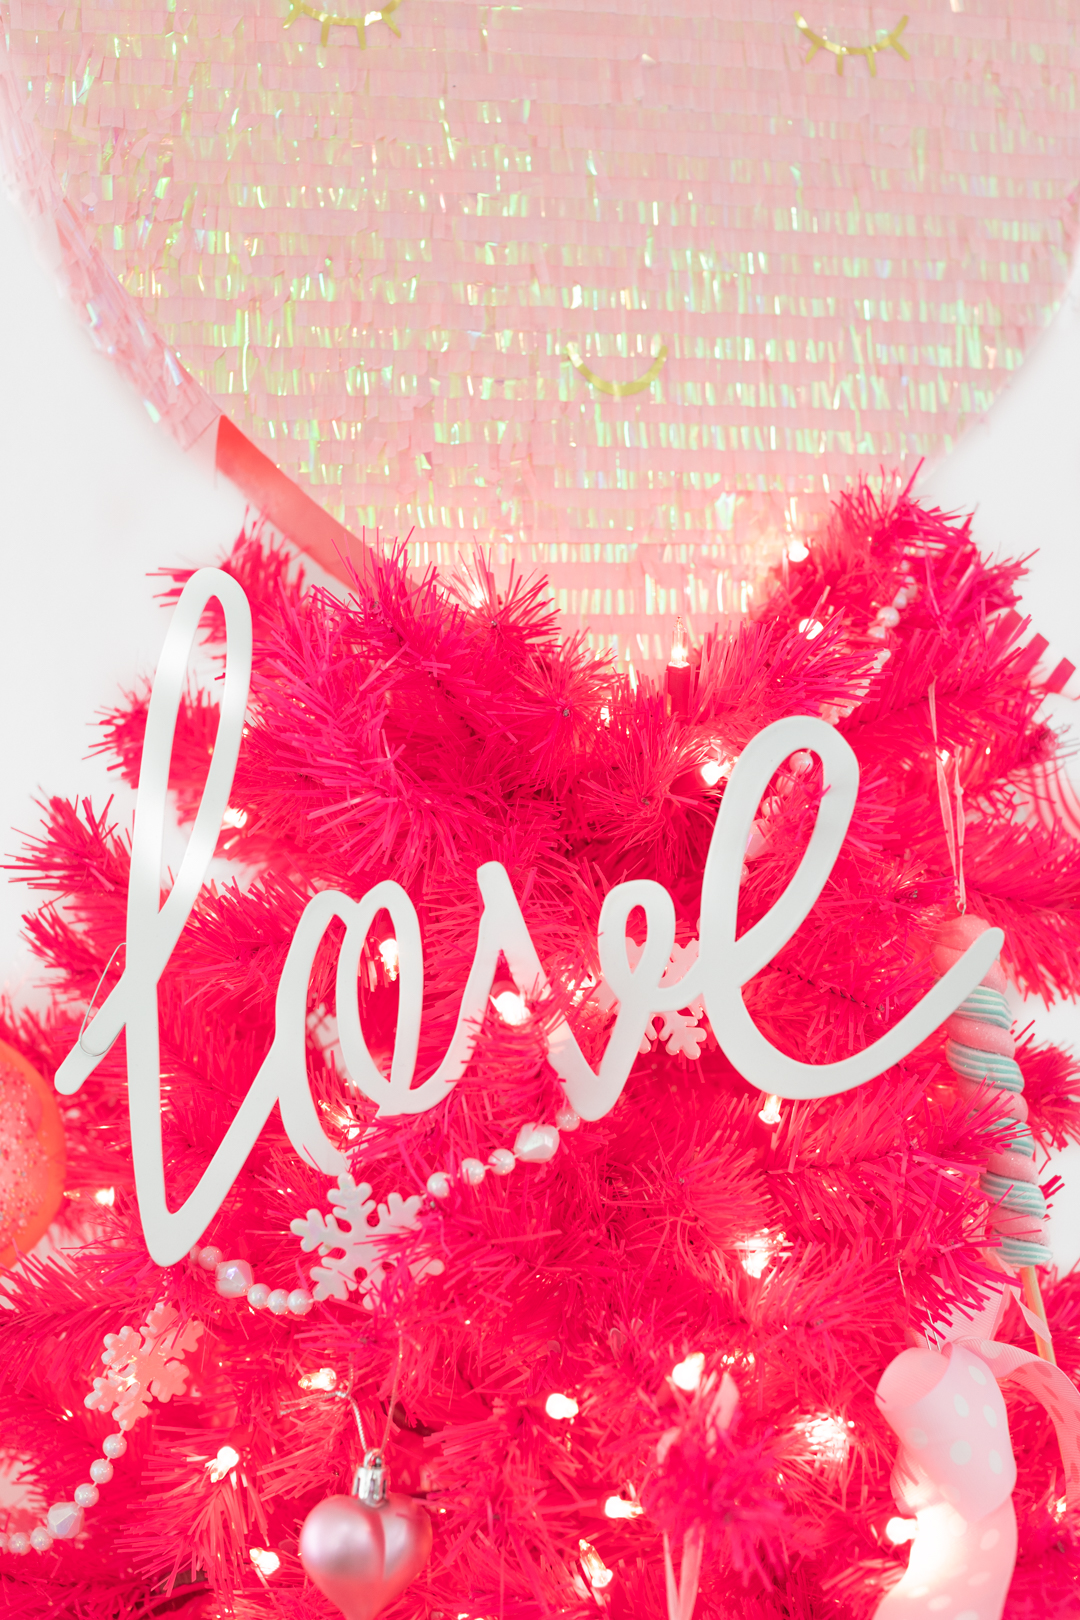 Love sign christmas tree ornament for valentine's day